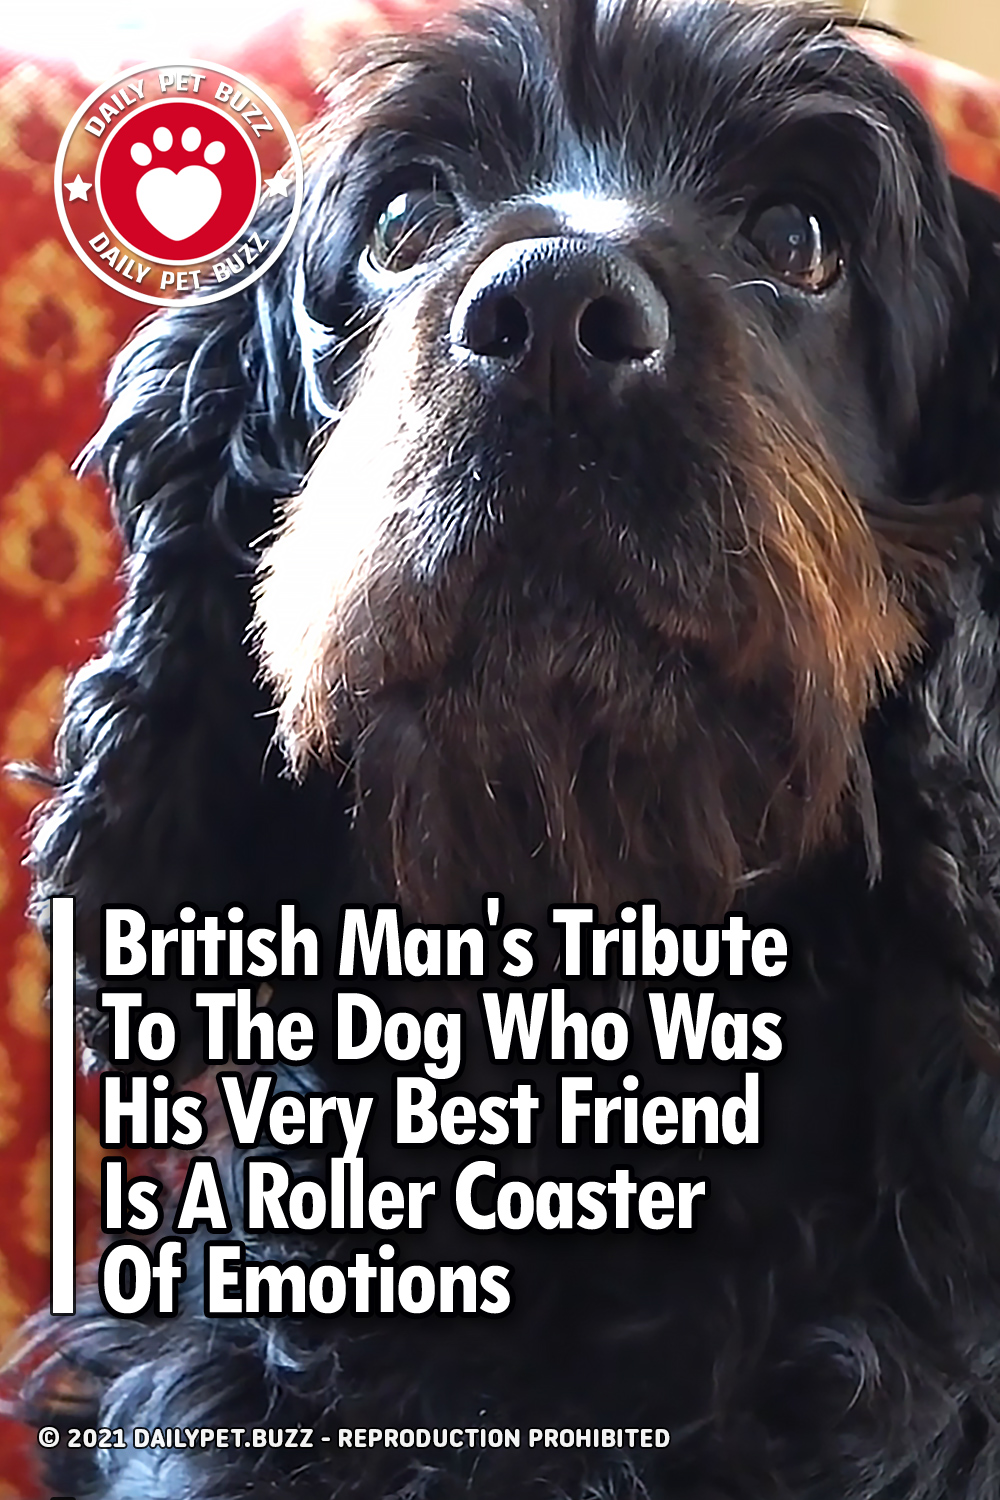 British Man\'s Tribute To The Dog Who Was His Very Best Friend Is A Roller Coaster Of Emotions